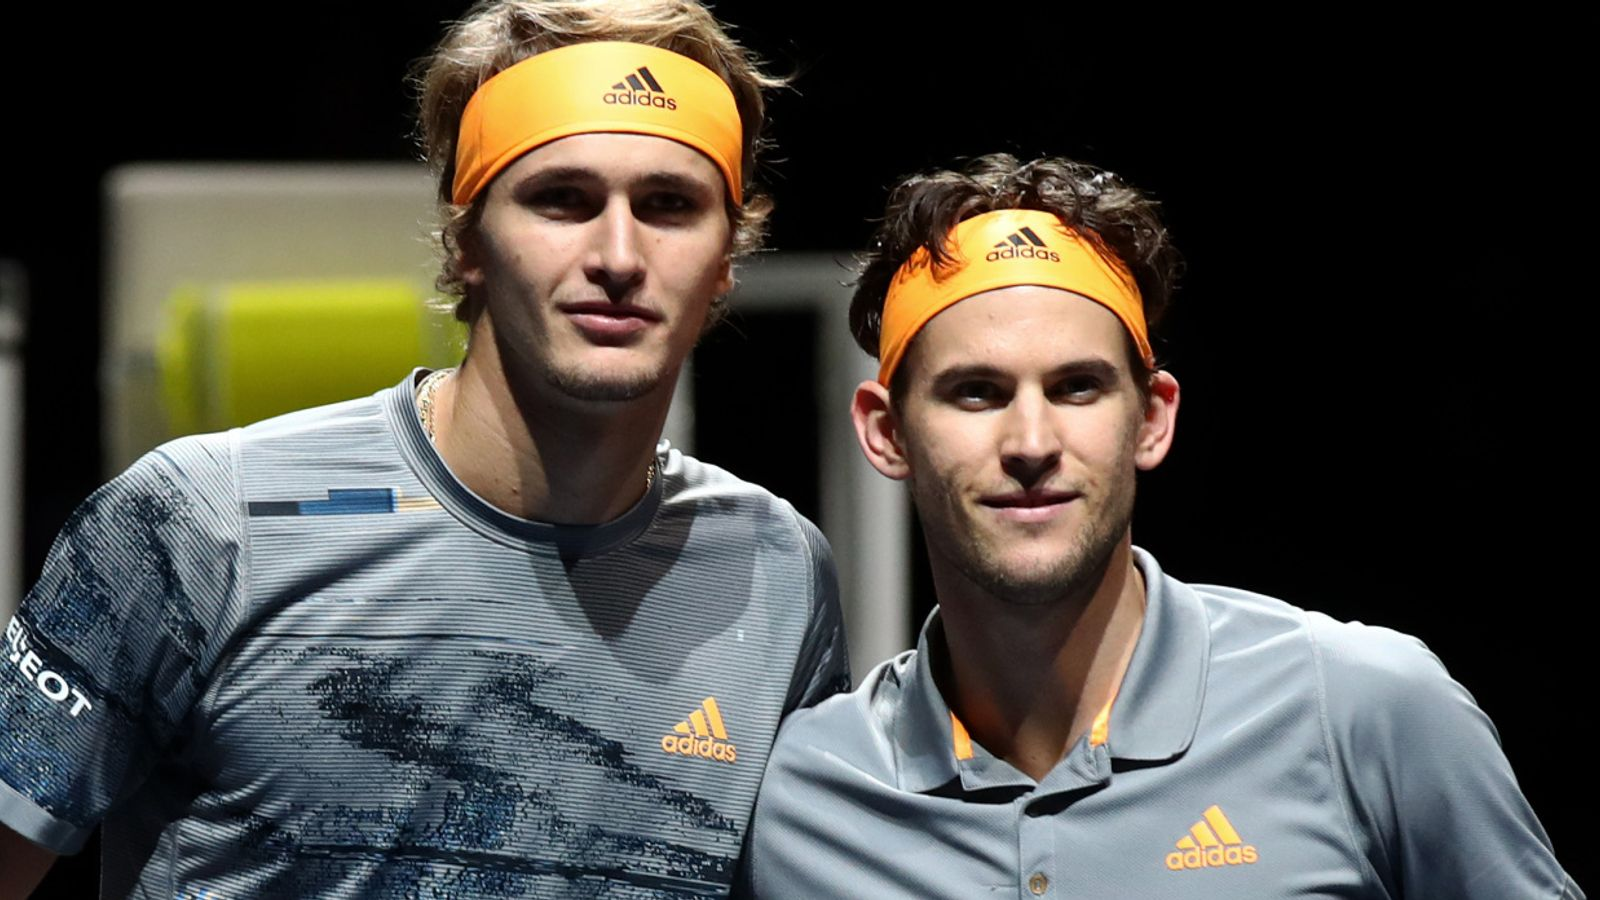 Us Open Dominic Thiem And Alexander Zverev Target First Grand Slam Title In New York Tennis News Sky Sports